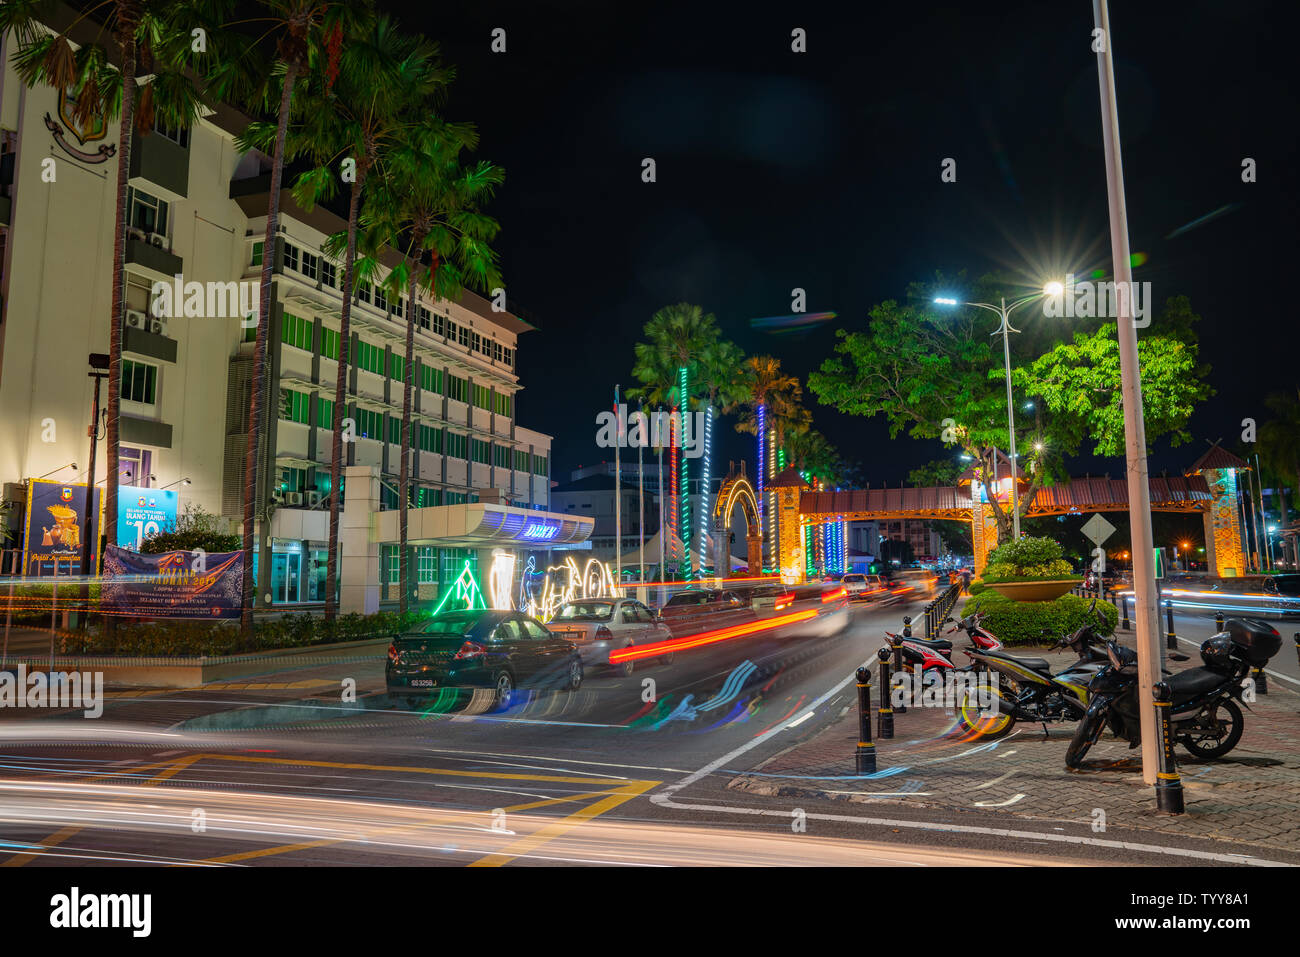 KOTA KINABALU BORNEO - MAY 30 2019; Street scene with neon lights and light trails and patterns from moving cars in long exposure - Stock Image